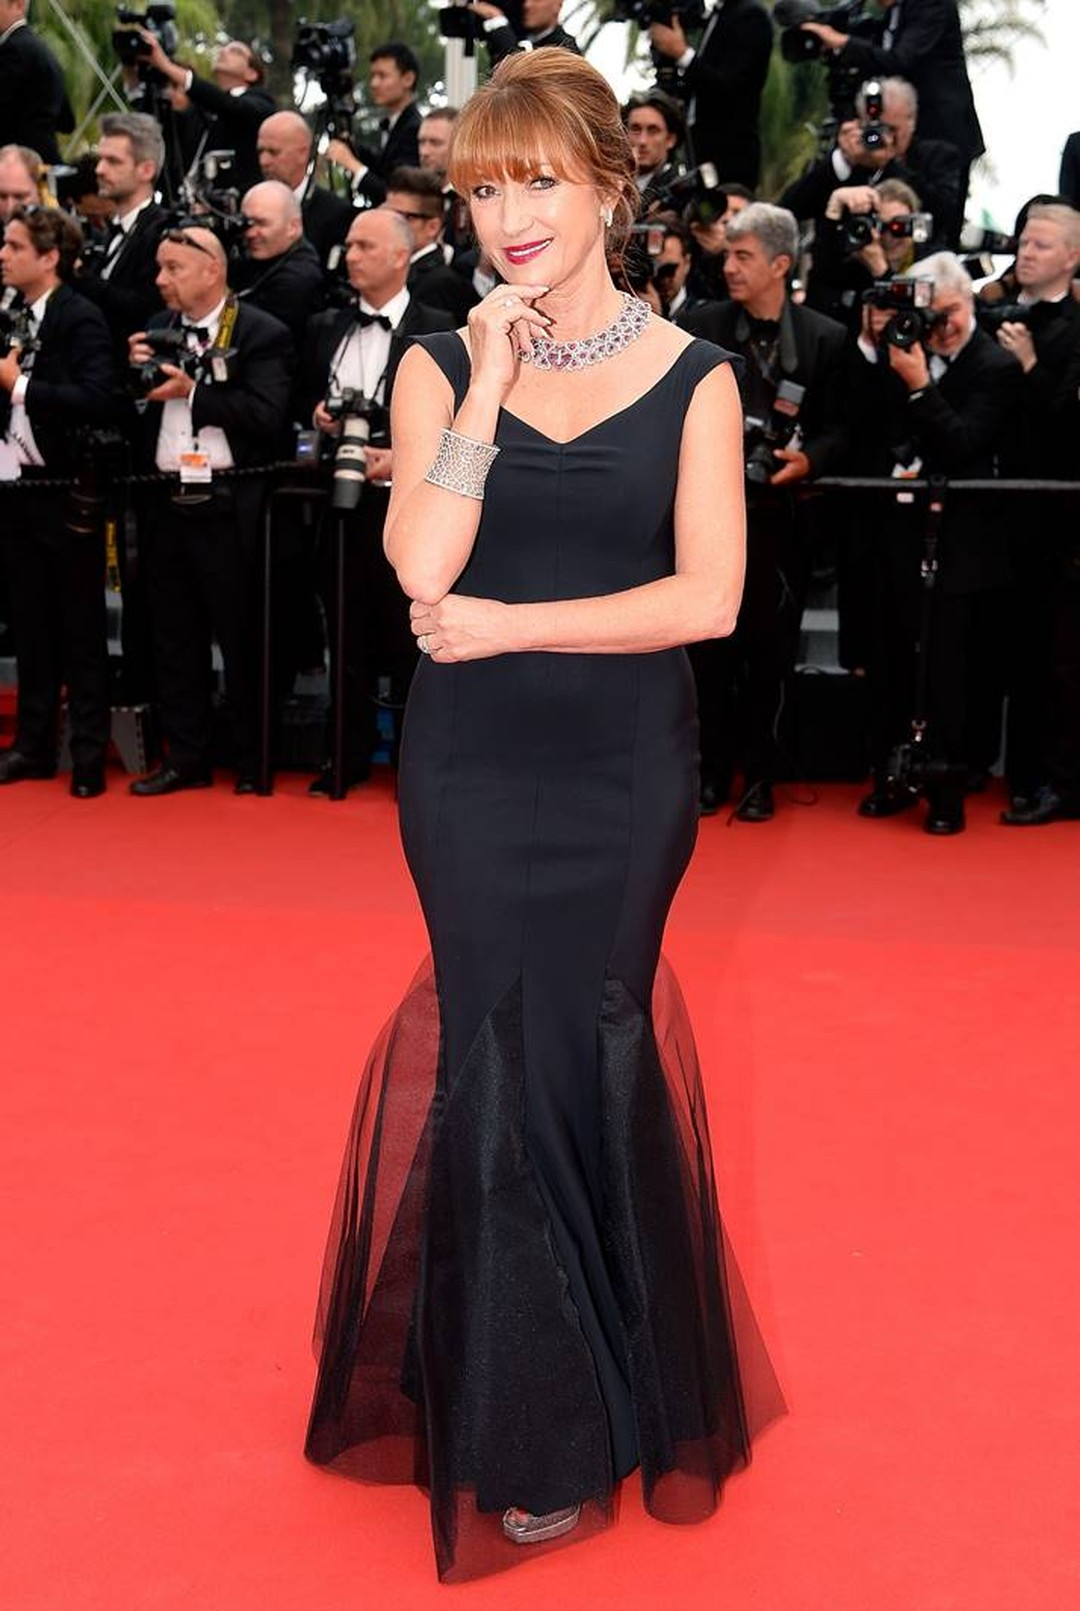 Actress Jane Seymour dazzled with her red carpet jewellery, opting for an Avakian necklace and bracelet for day two of the Cannes Film Festival.